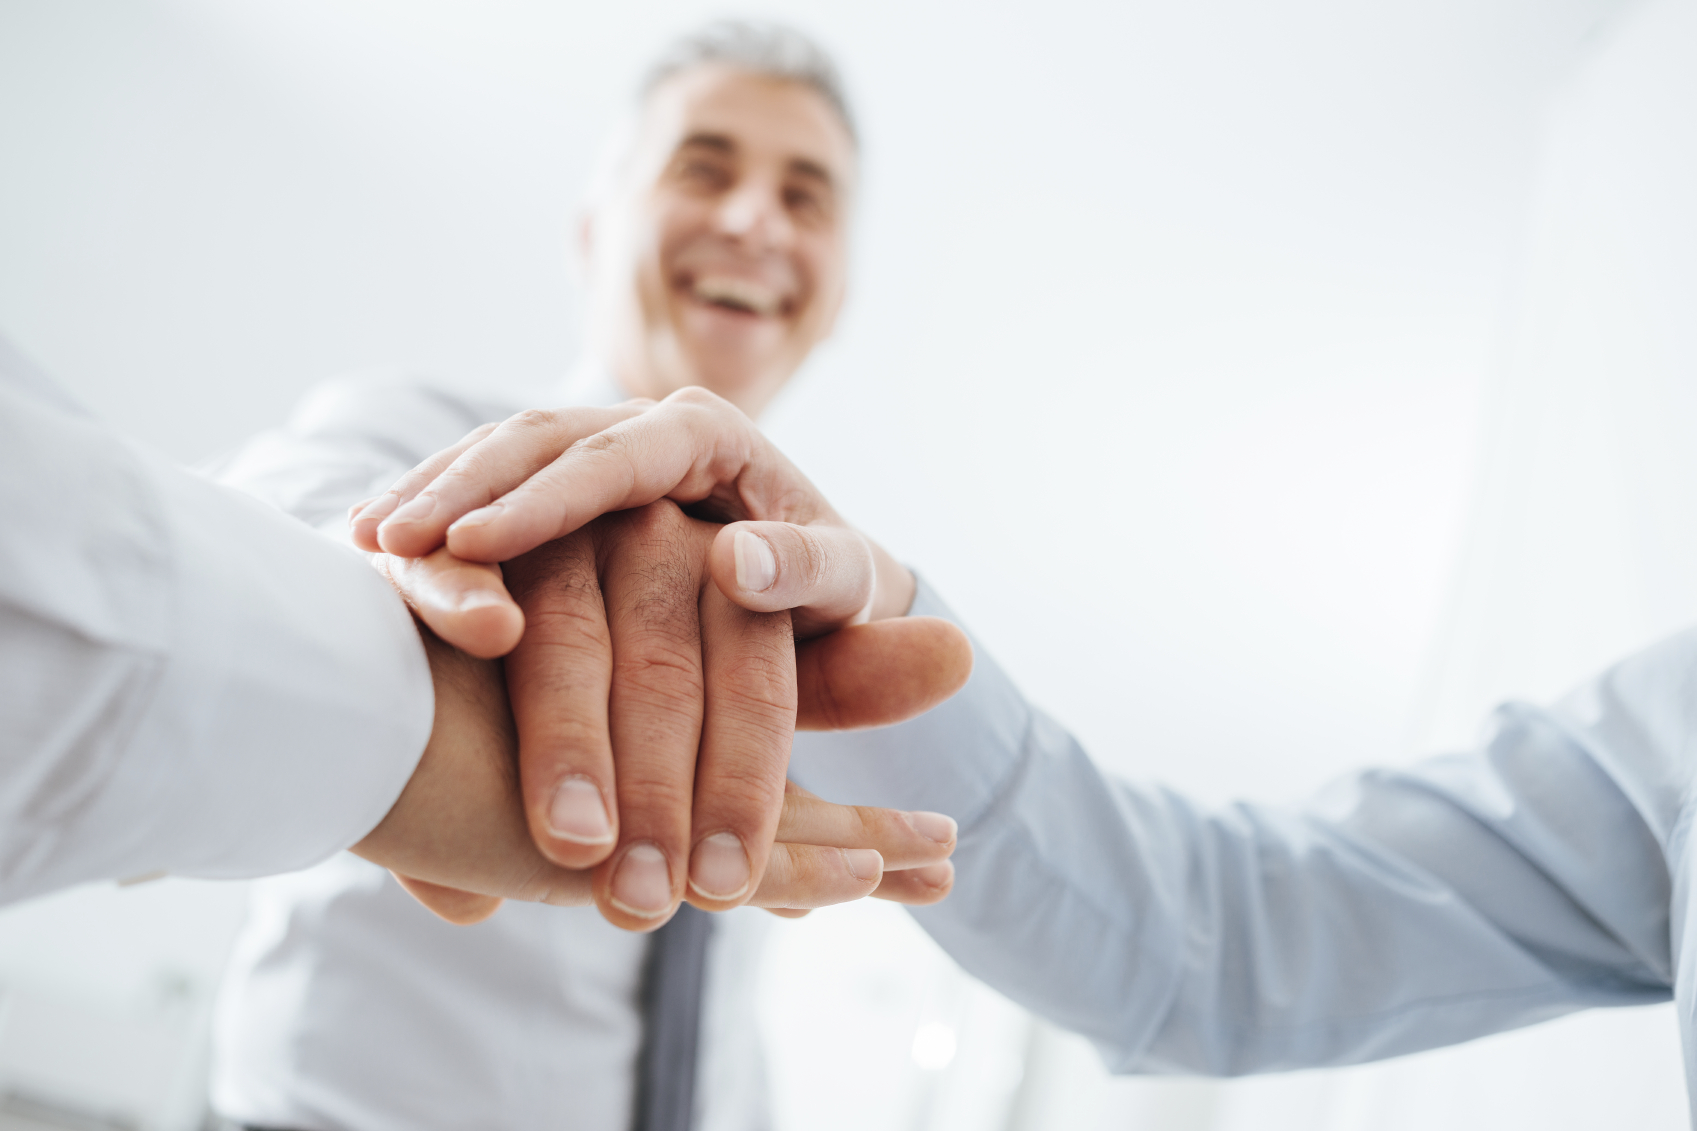 Cheerful business team stacking hands and smiling, teamwork and success concept, hands close up